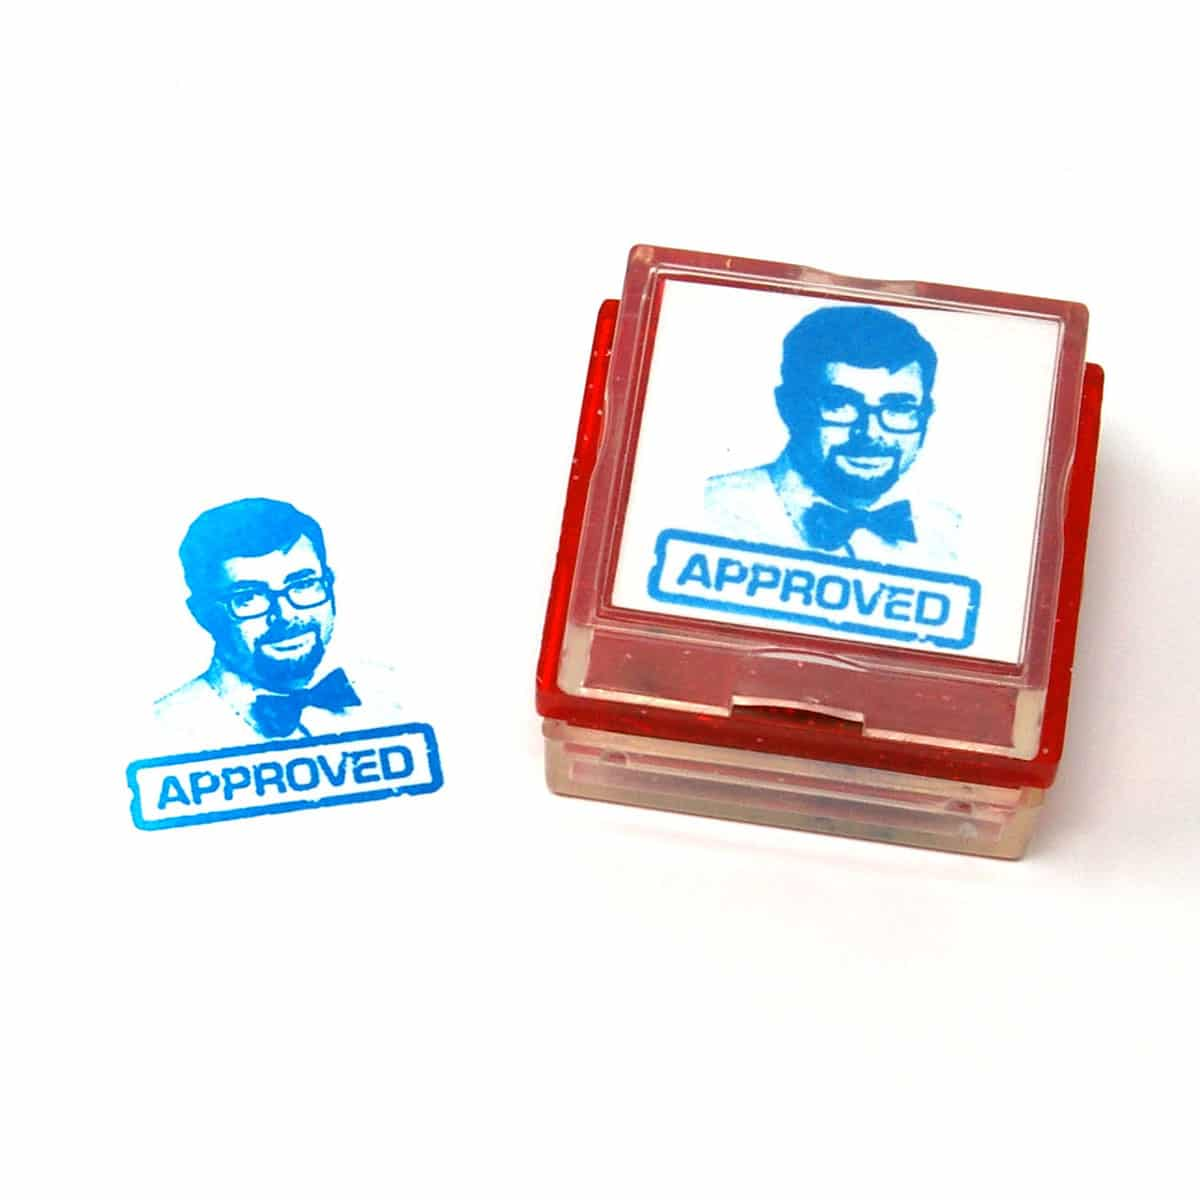 approved teacher rubber stamps